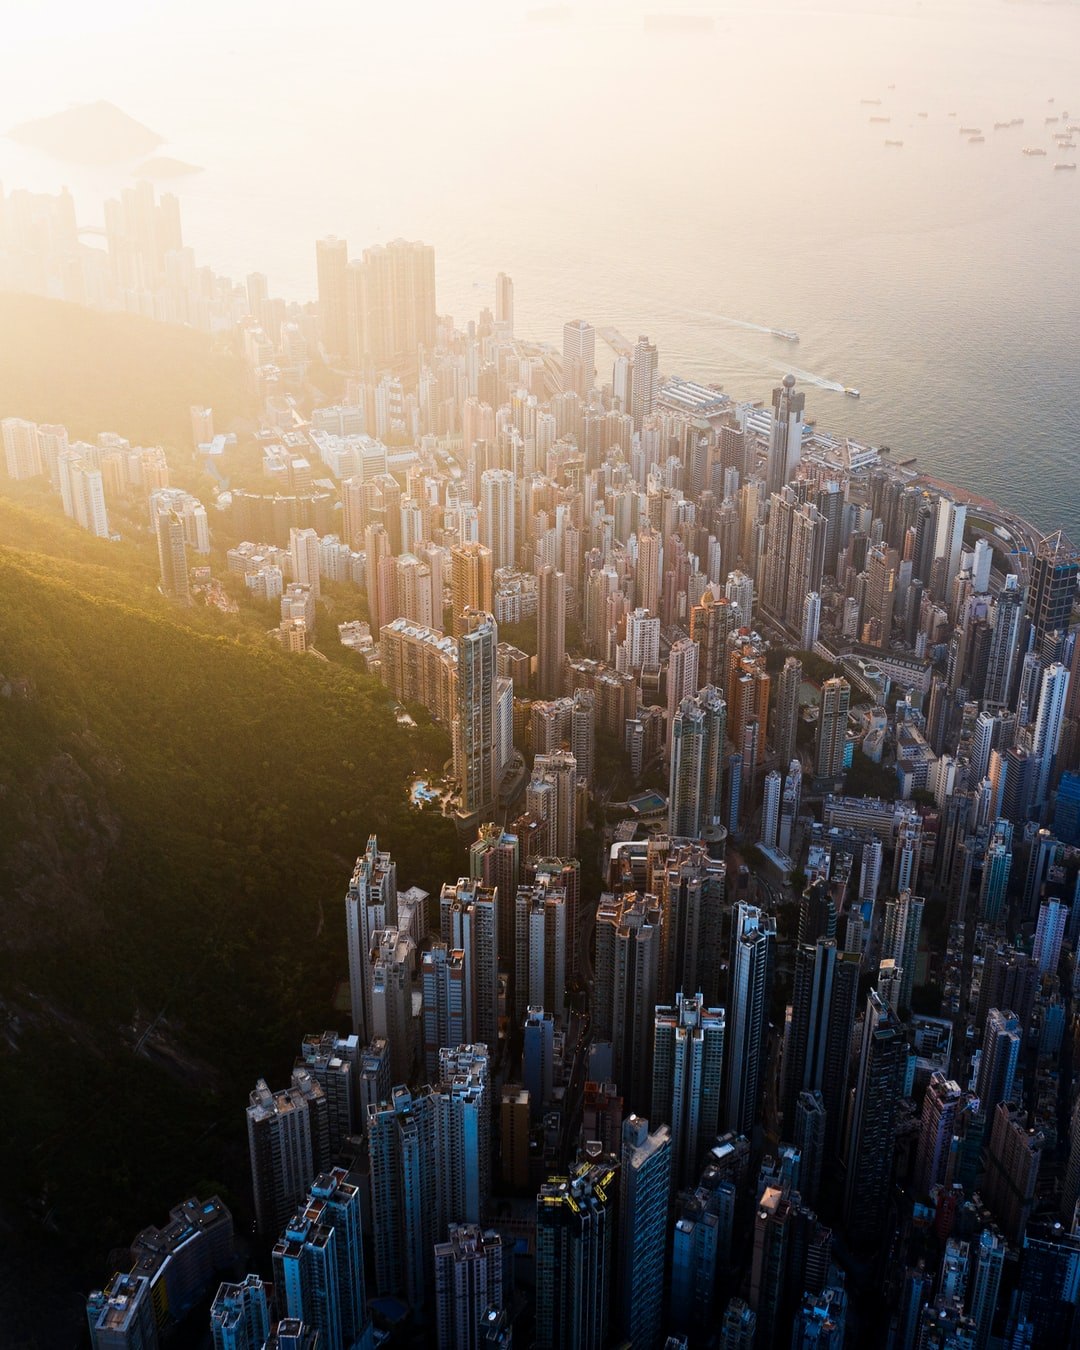 An aerial perspective of the high rises on Hong Kong Island during sunset.